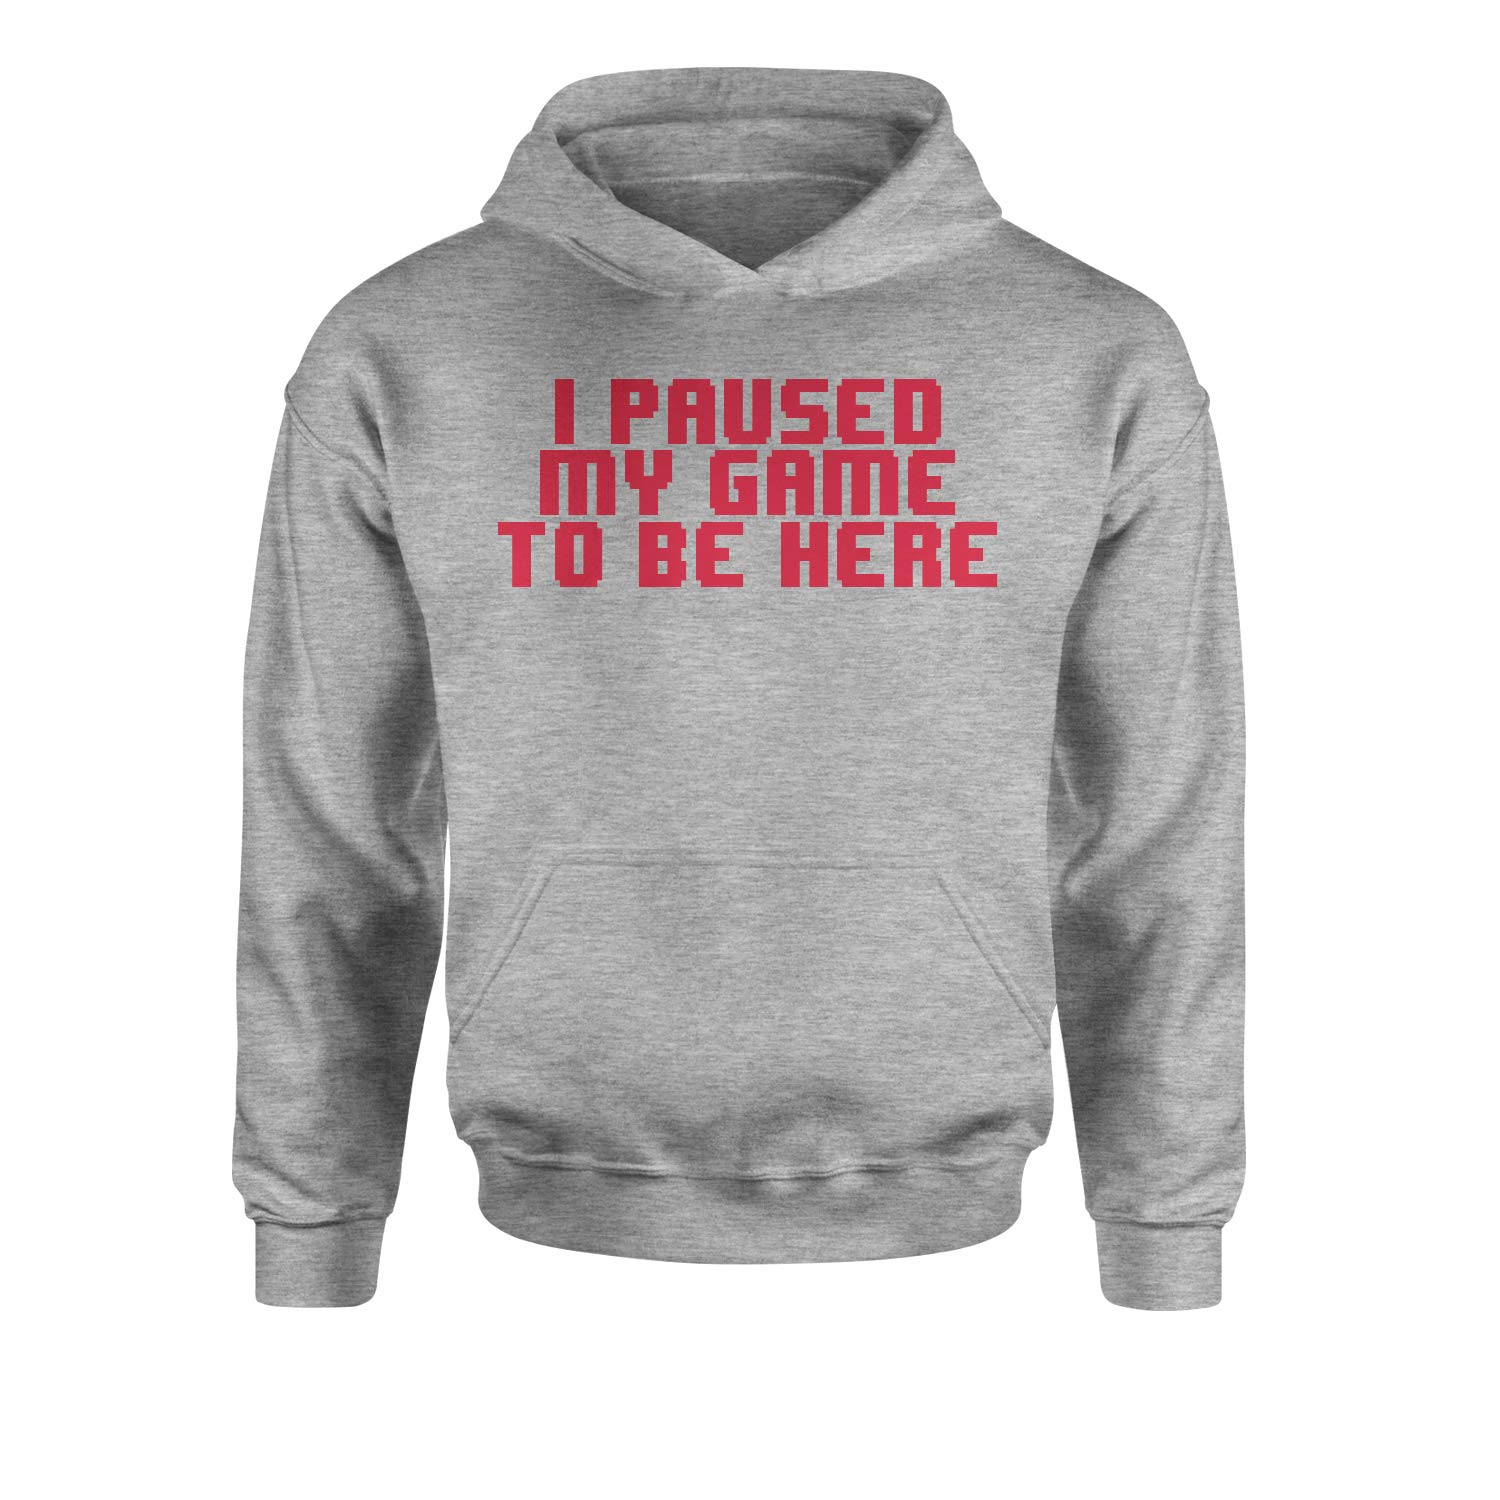 Expression Tees I Paused My Game to Be Here Youth-Sized Hoodie